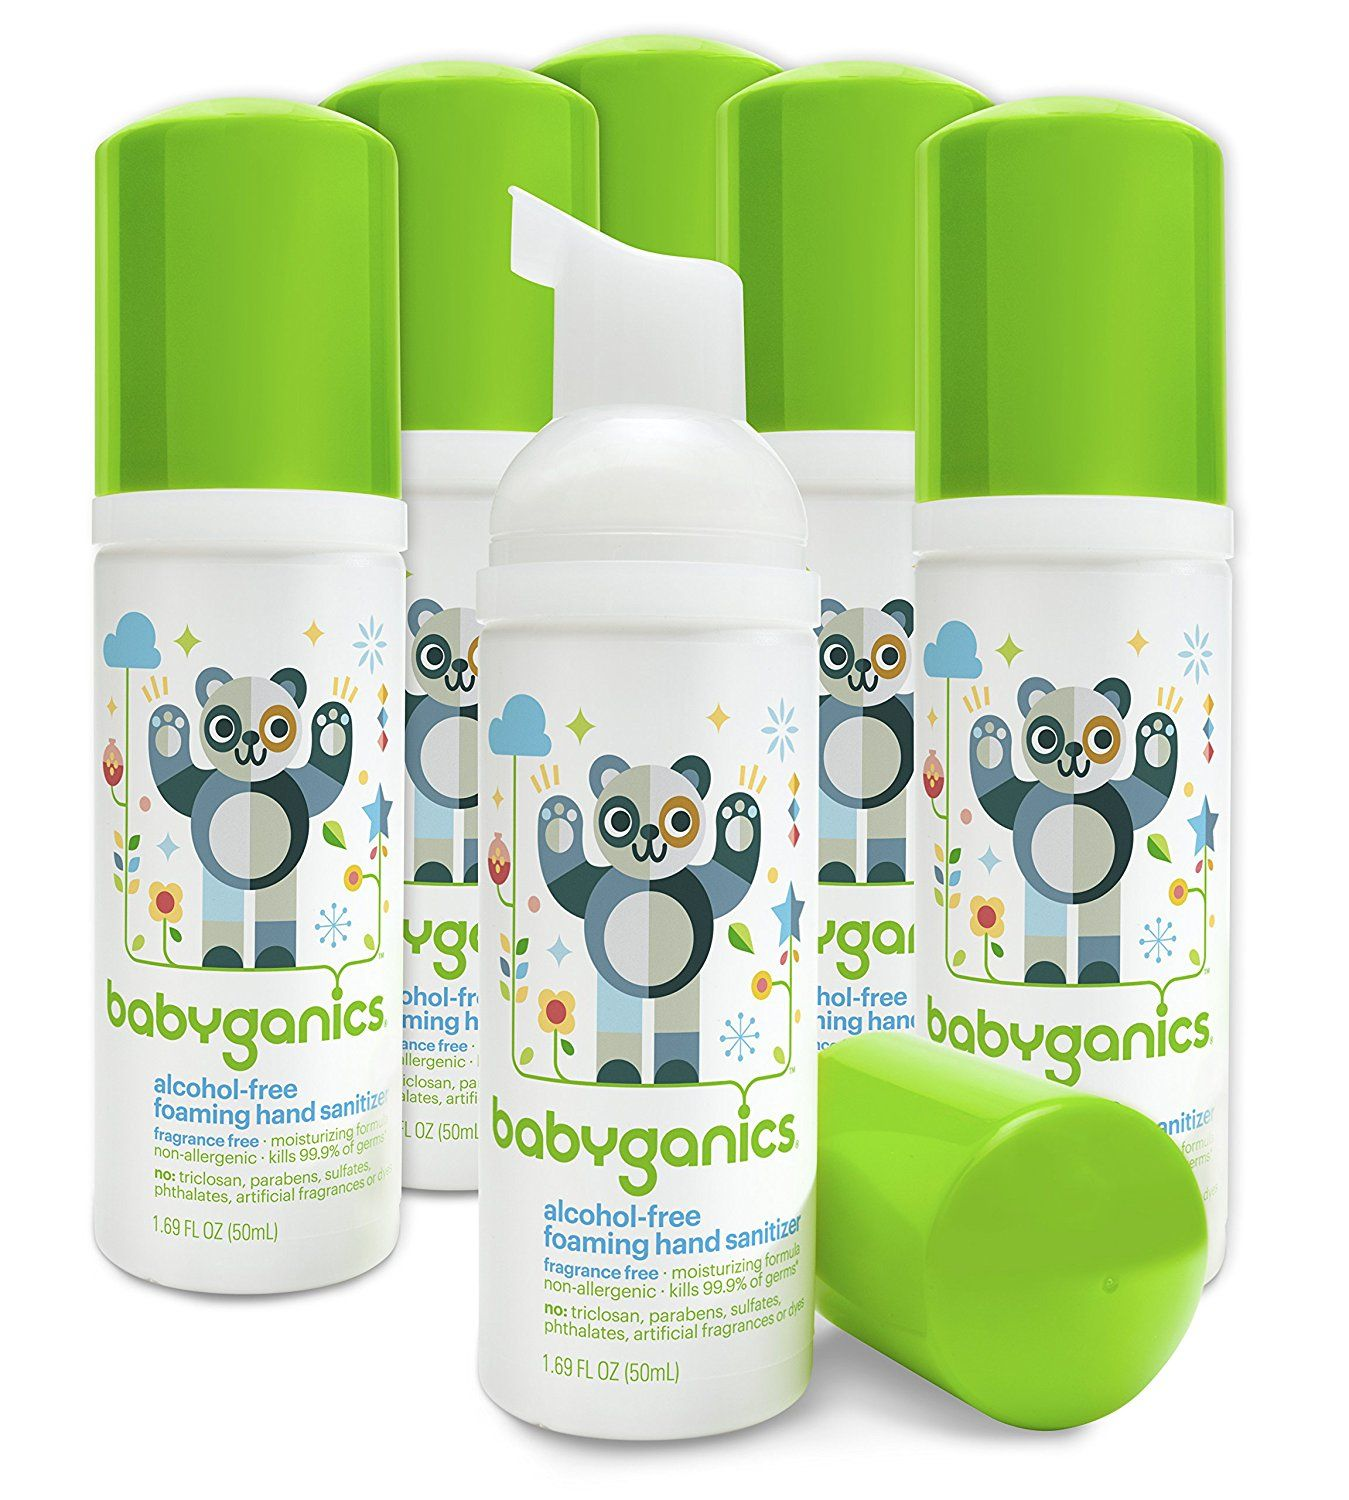 Babyganics Alcoholfree Foaming Hand Sanitizer Refill Fragrance